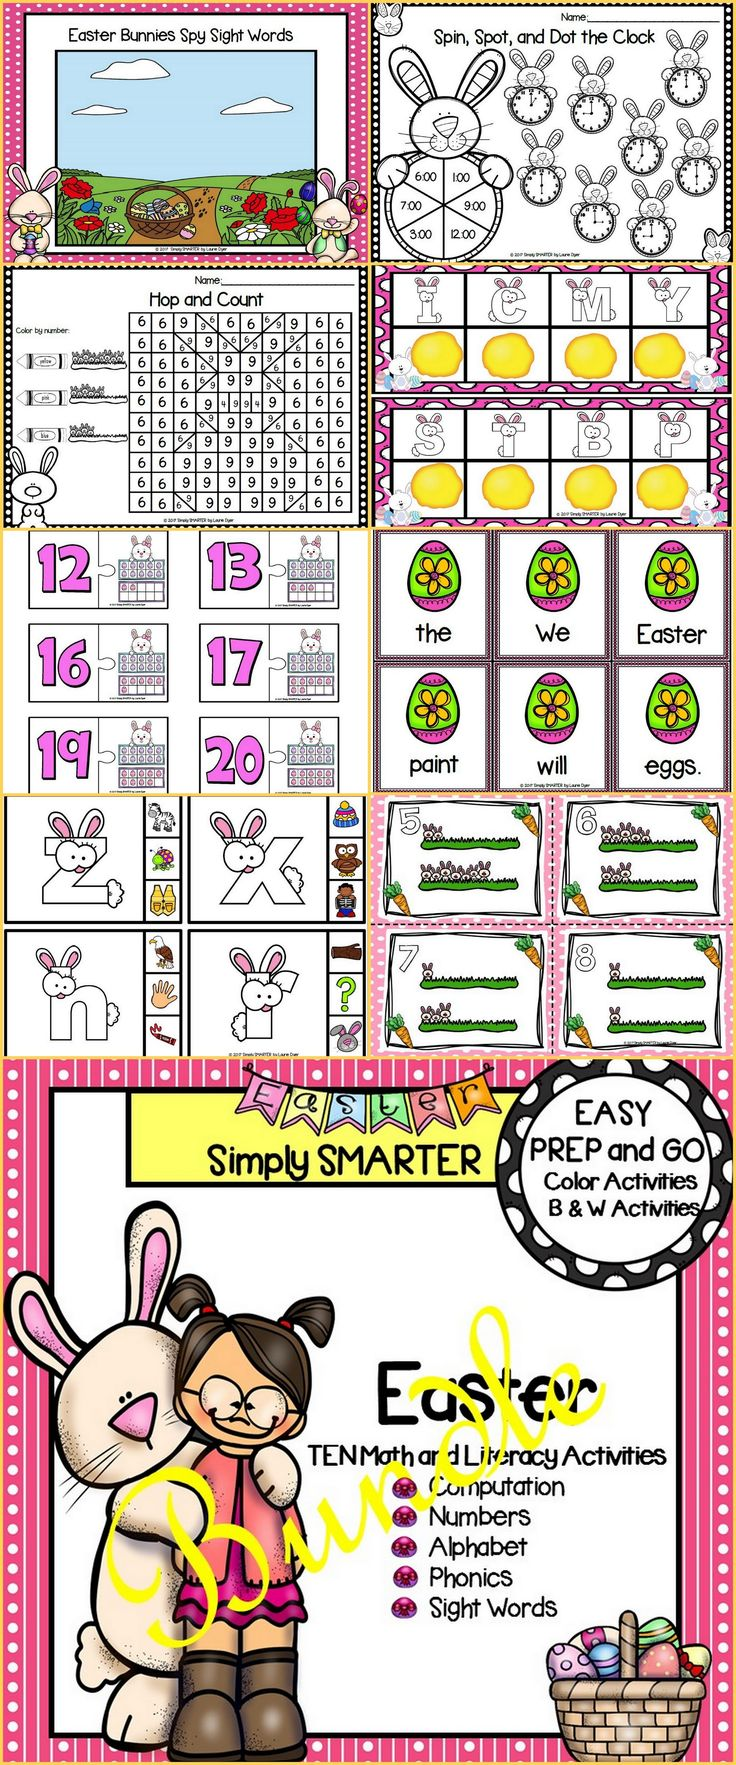 Are you looking for EASY PREP literacy and math activities for preschool, kindergarten, or first grade?  Then enjoy this resource which is comprised of TEN different EASTER themed activities complete with a combination of color and black and white activities. The bundle includes activities such as task cards, clip cards, puzzles, Bingo Dauber dotting activities, color by the code pages, Play-Doh mats, I Spy, and MORE!  The activities can be used for literacy and math centers or homework!